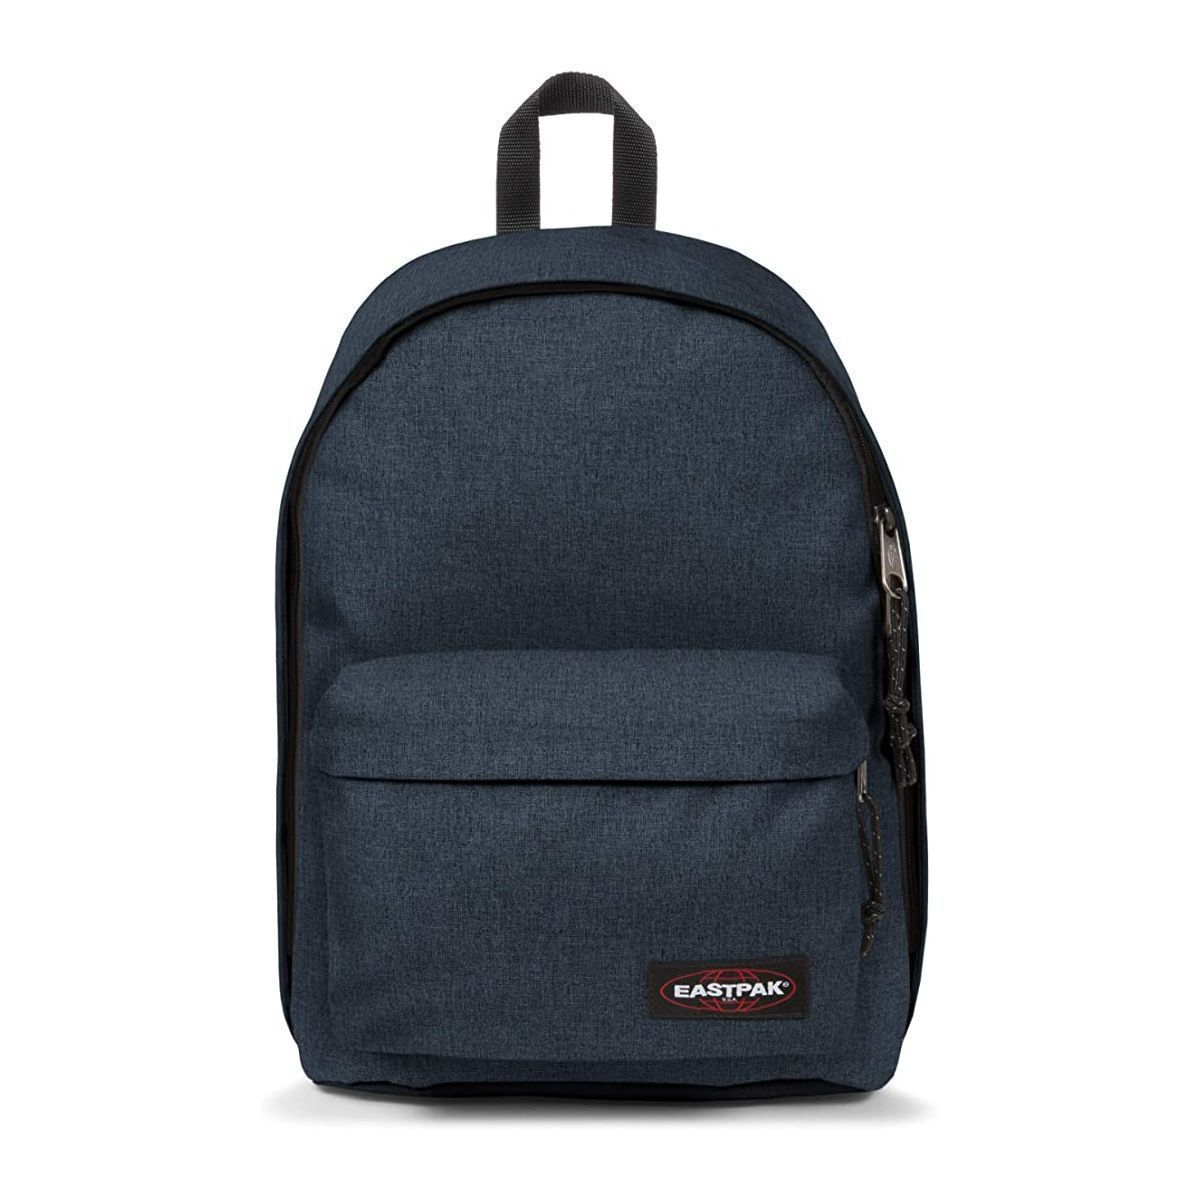 Eastpak femme out of office bleu